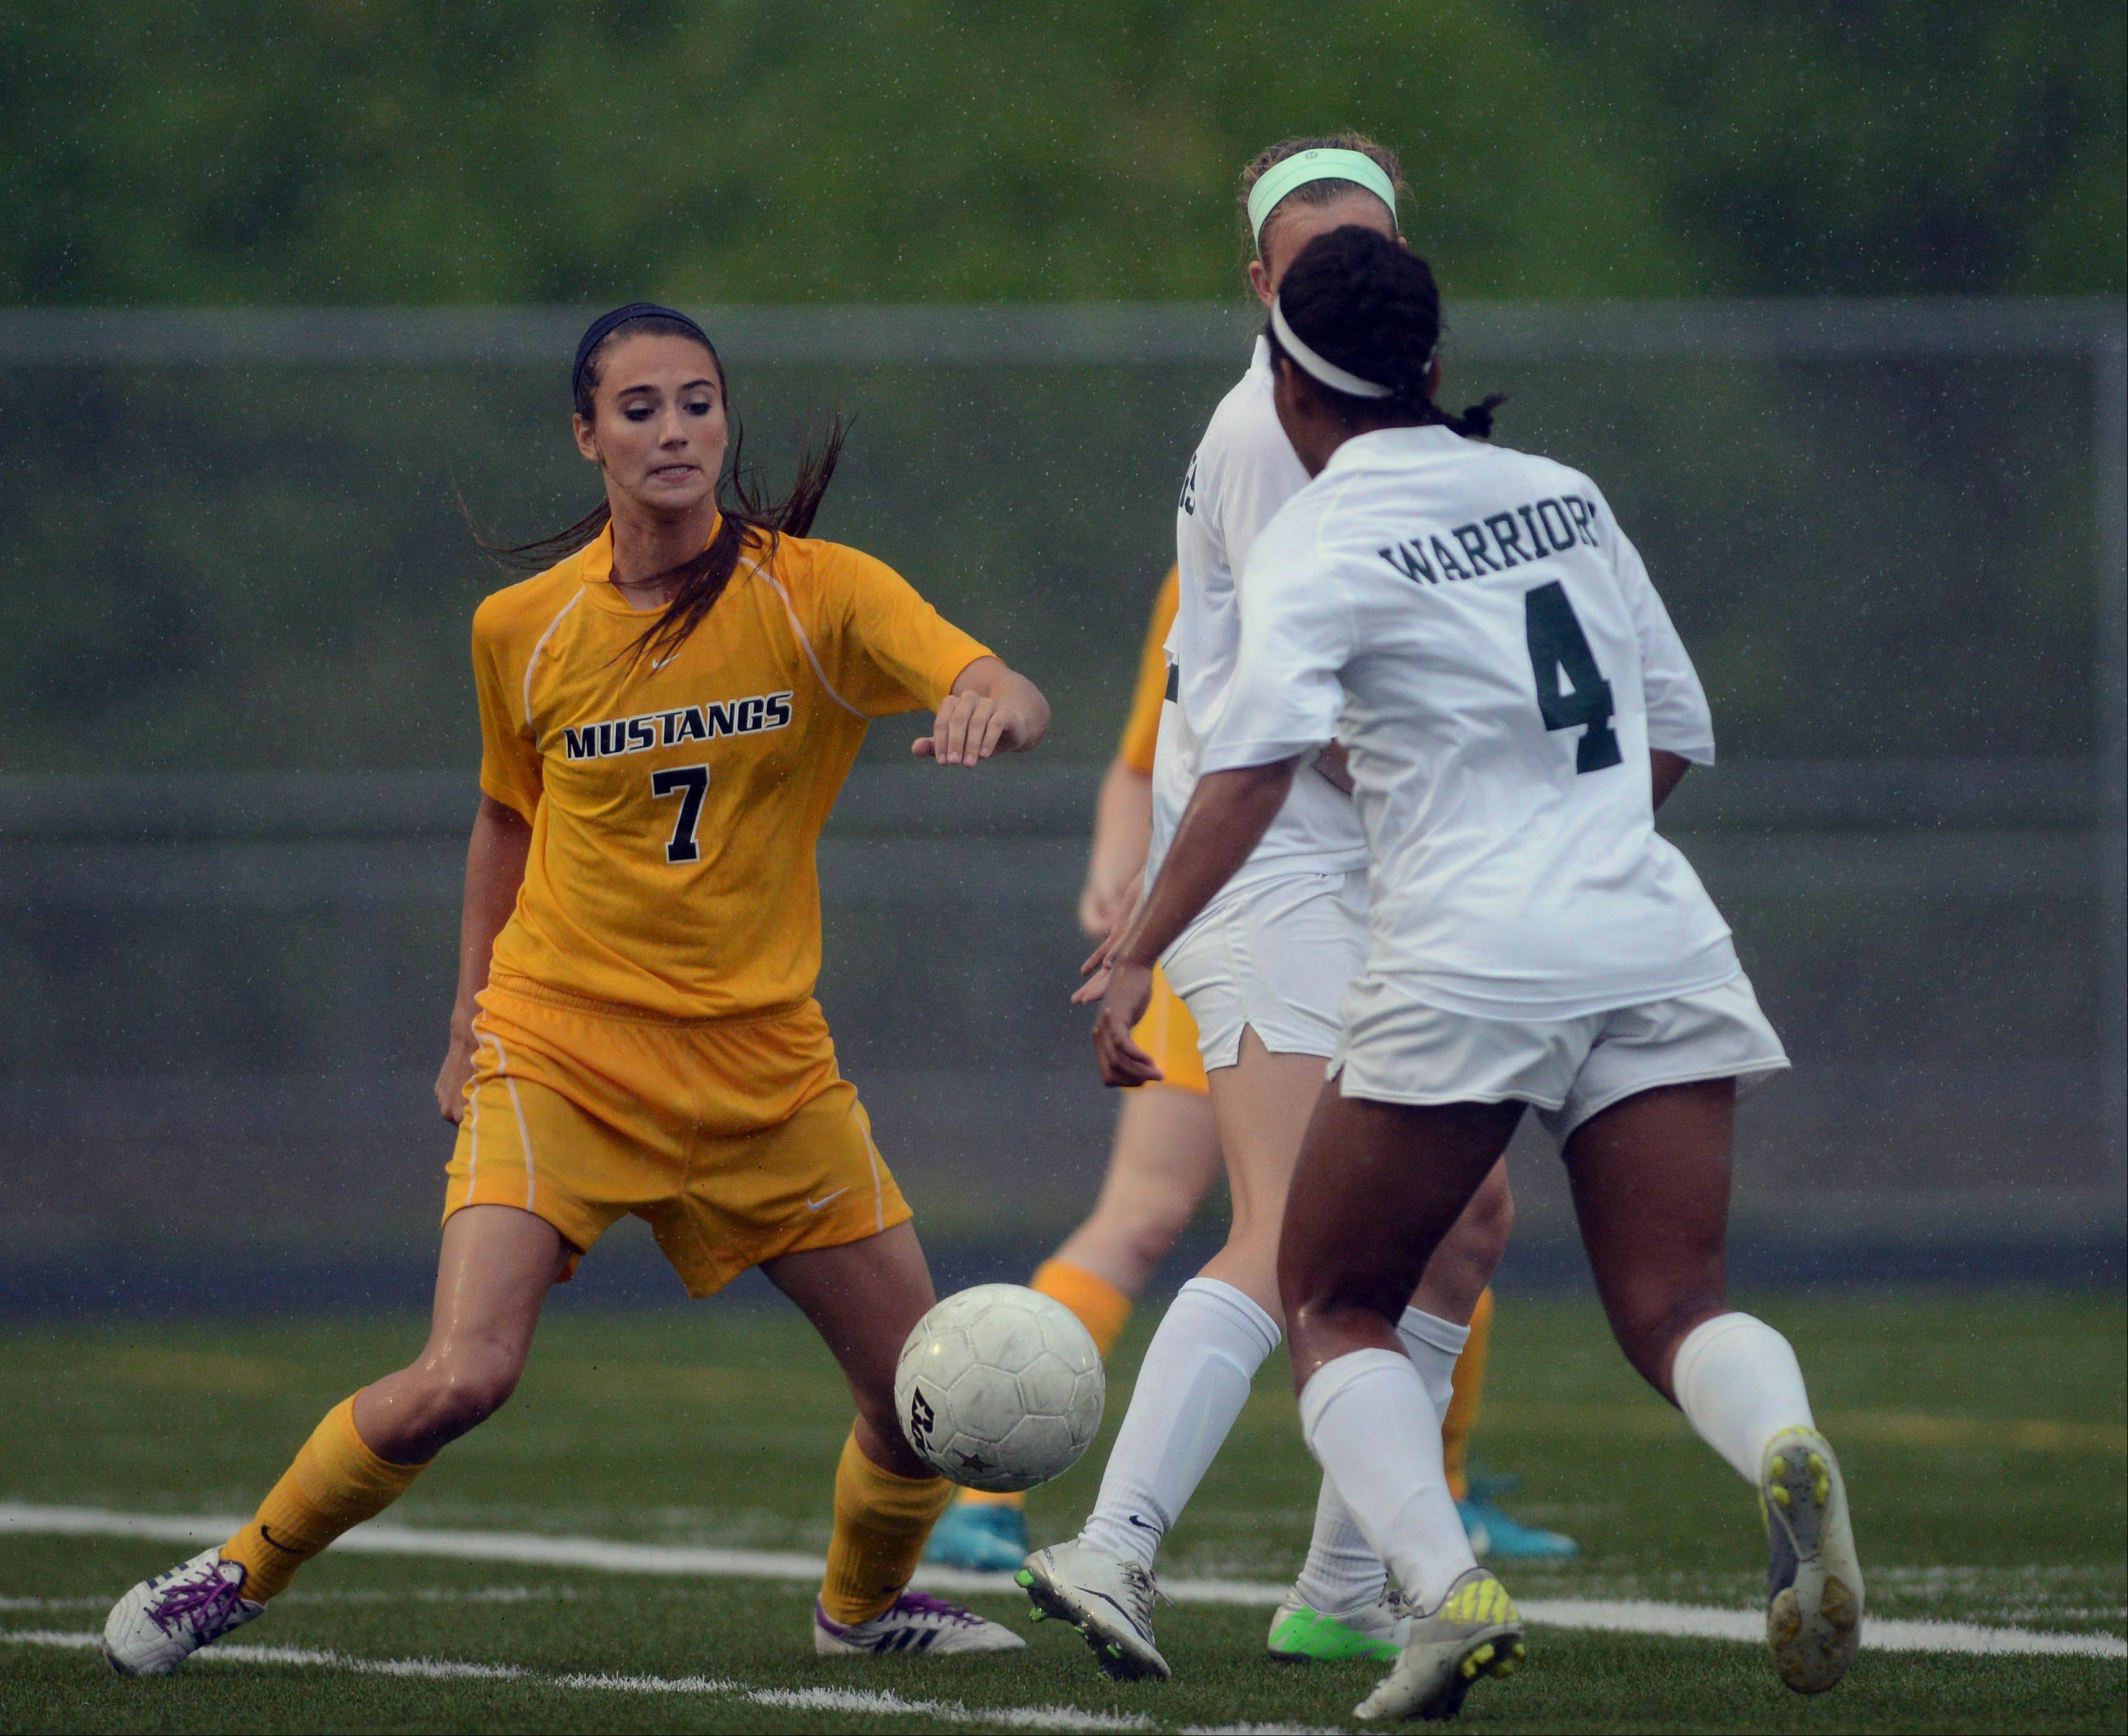 Rachel Stoffregen of Metea Valley,left, and Kristen Dodson of Waubonsie eye the ball during the class 3A girls soccer regional final in Aurora Friday.